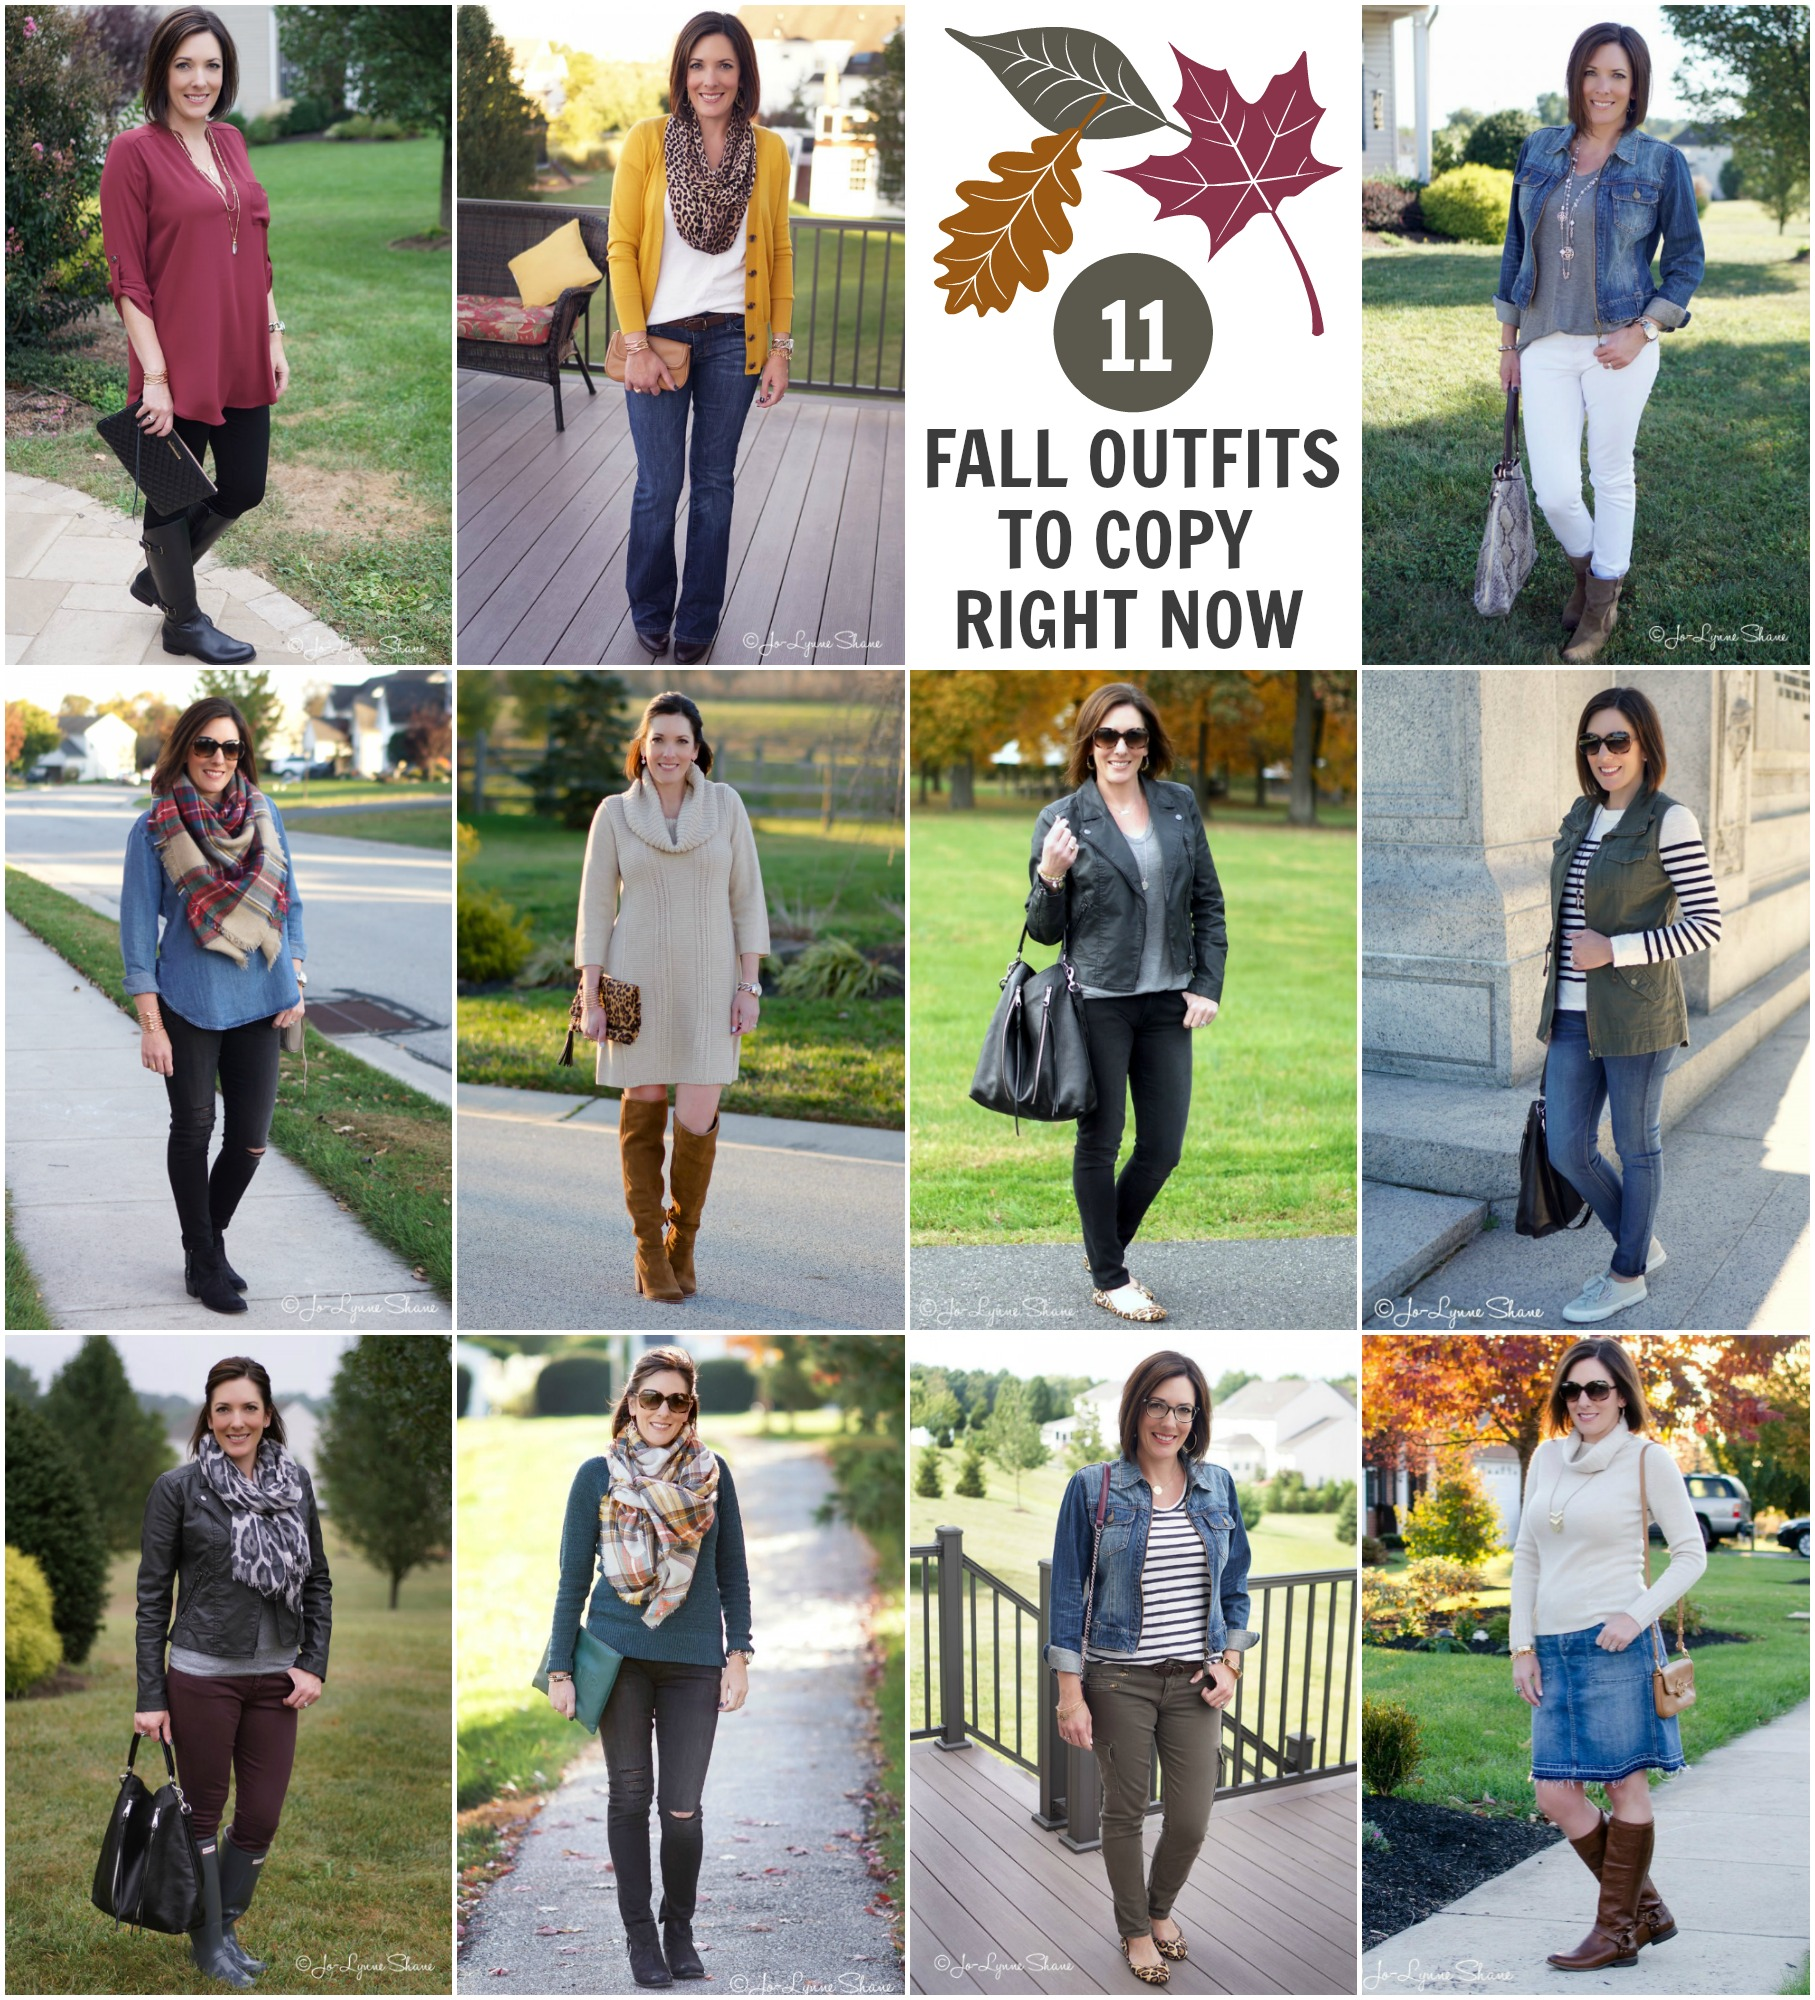 11-fall-outfits-to-copy